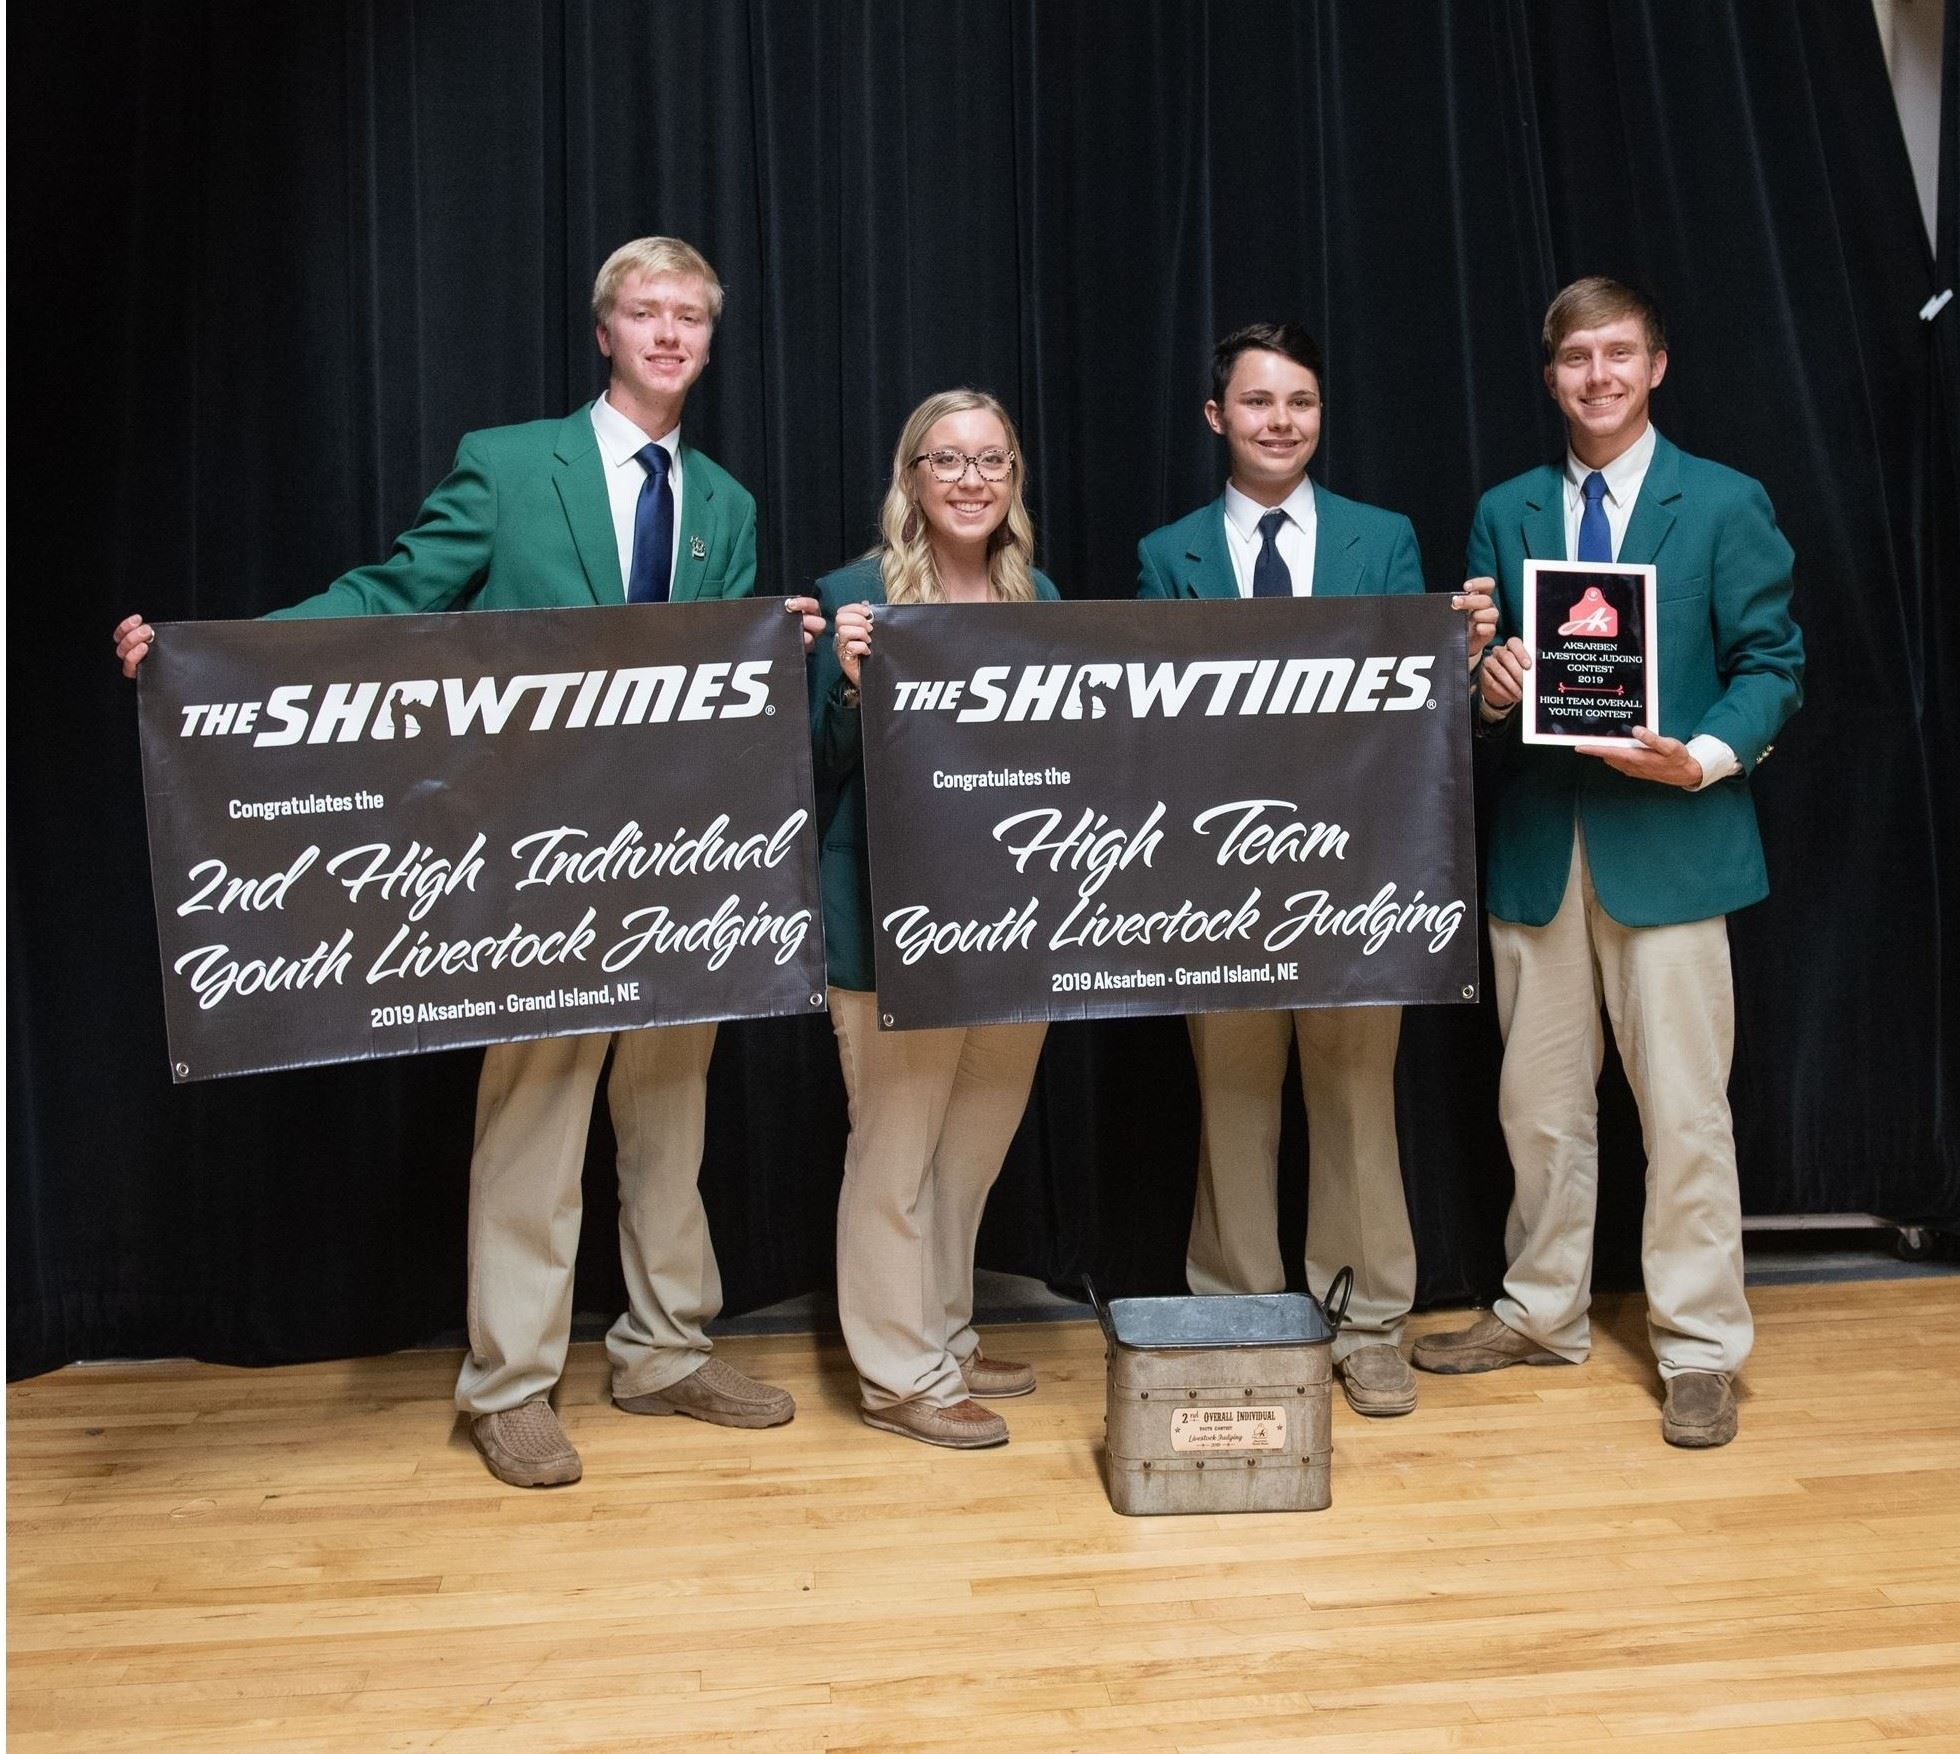 2019 High Team Youth Livestock Judging